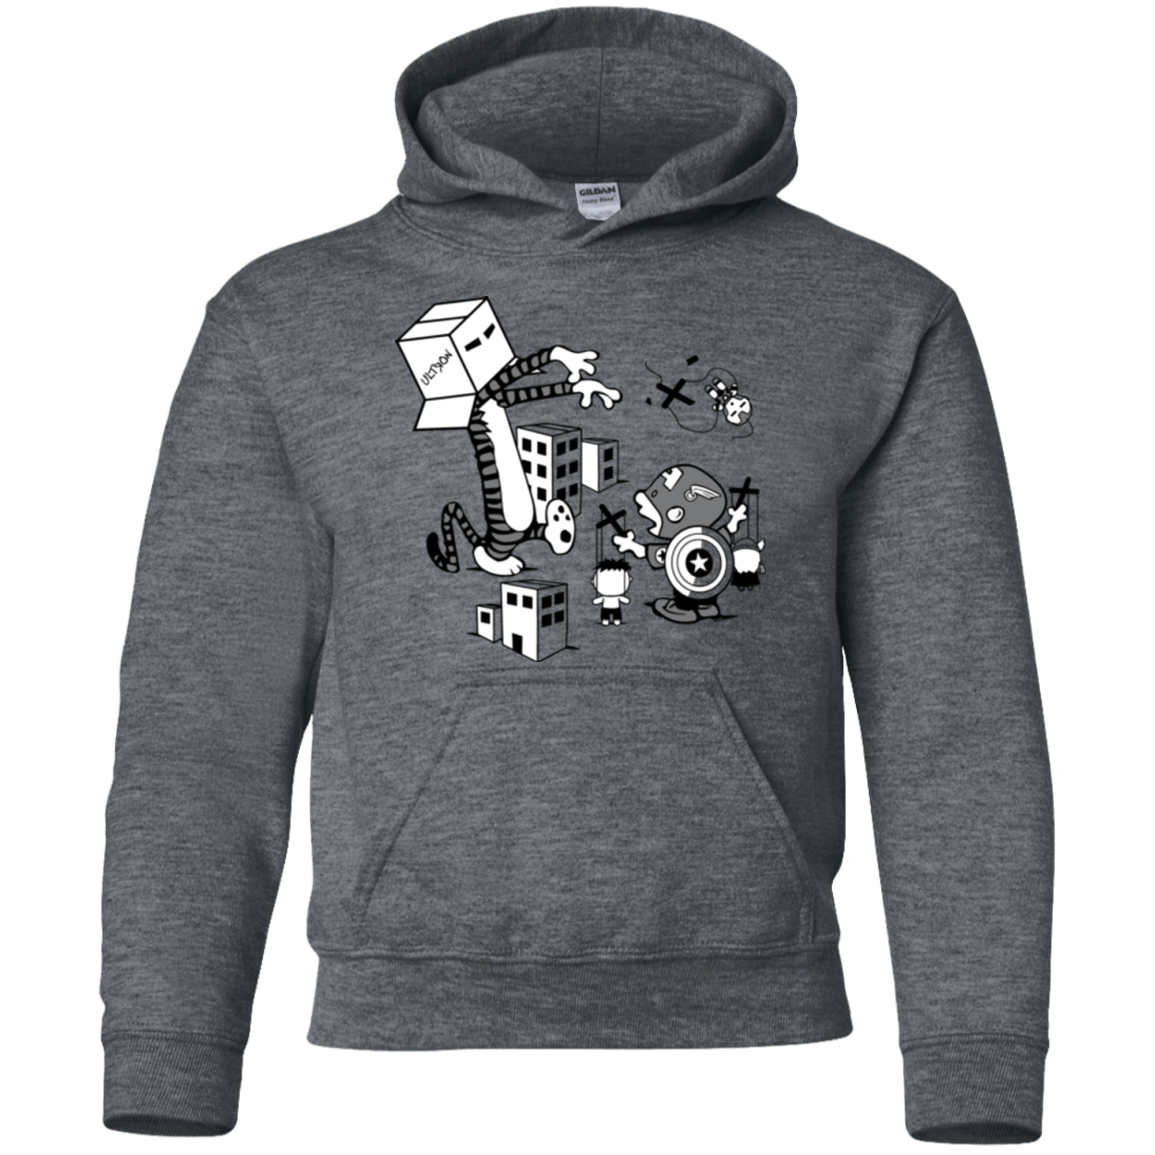 Hoodie string png. No strings attached youth